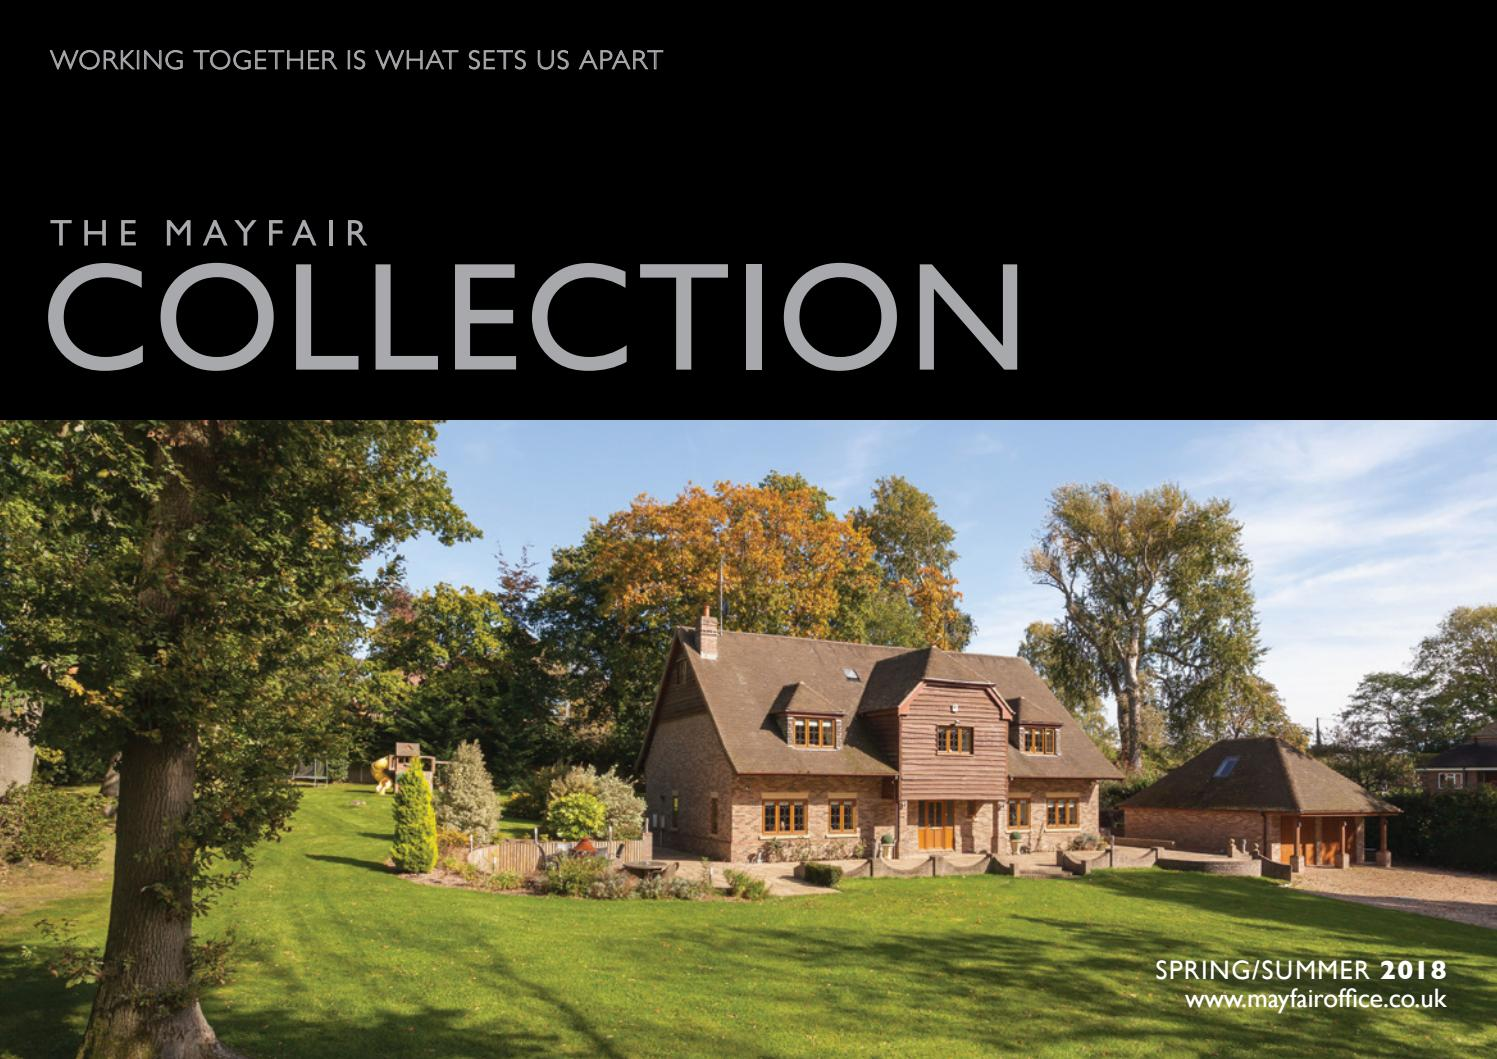 Mayfair Collection Spring Summer 2018 By Pelusacreate Issuu